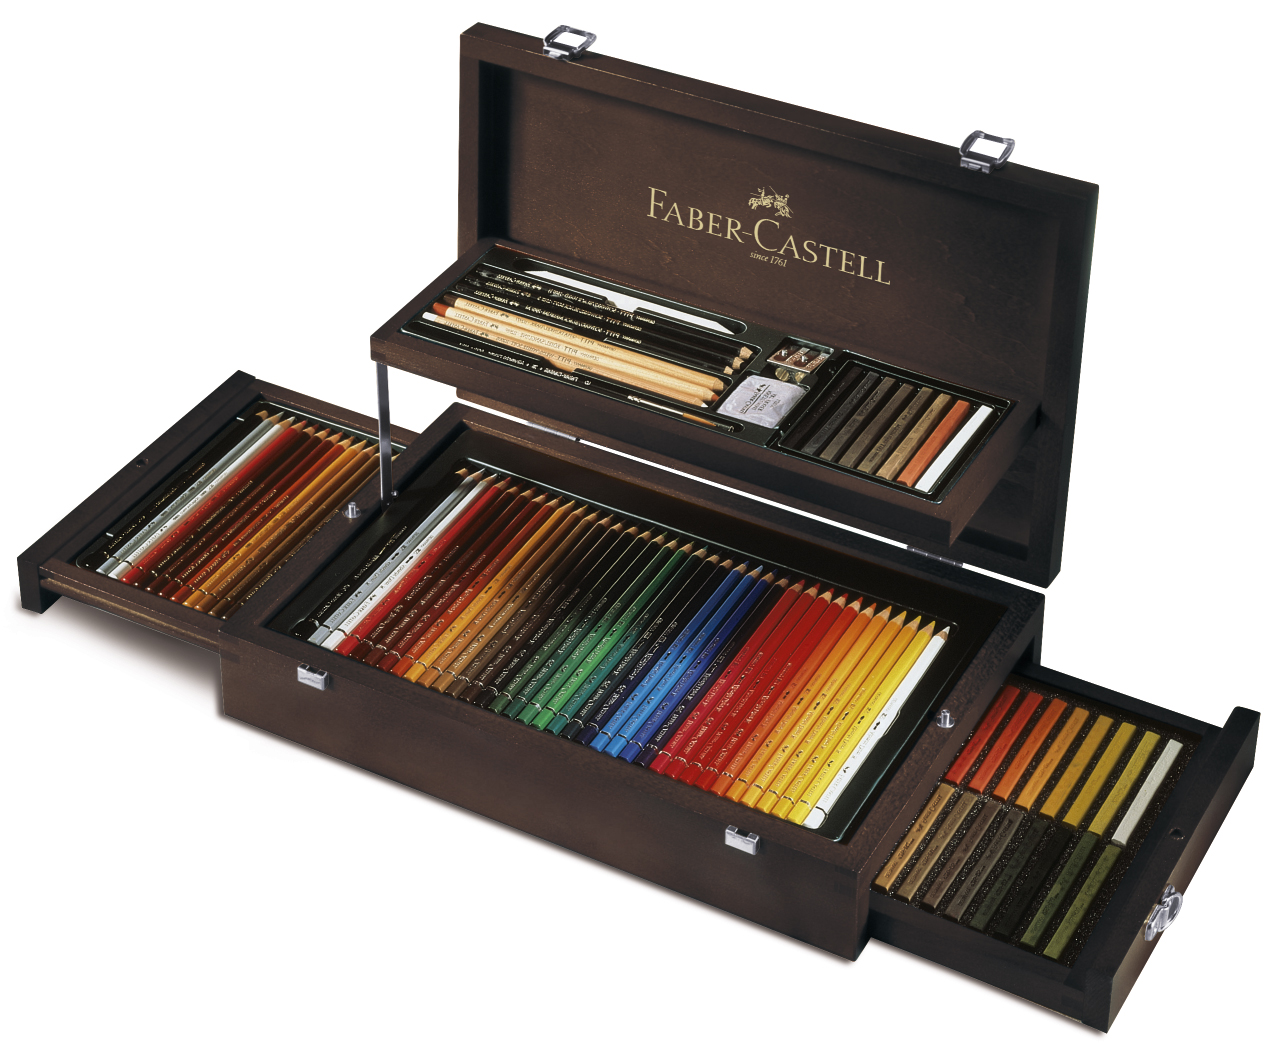 coffret beaux arts faber castell coffrets beaux arts 126 pcs coffret beaux arts en bois. Black Bedroom Furniture Sets. Home Design Ideas